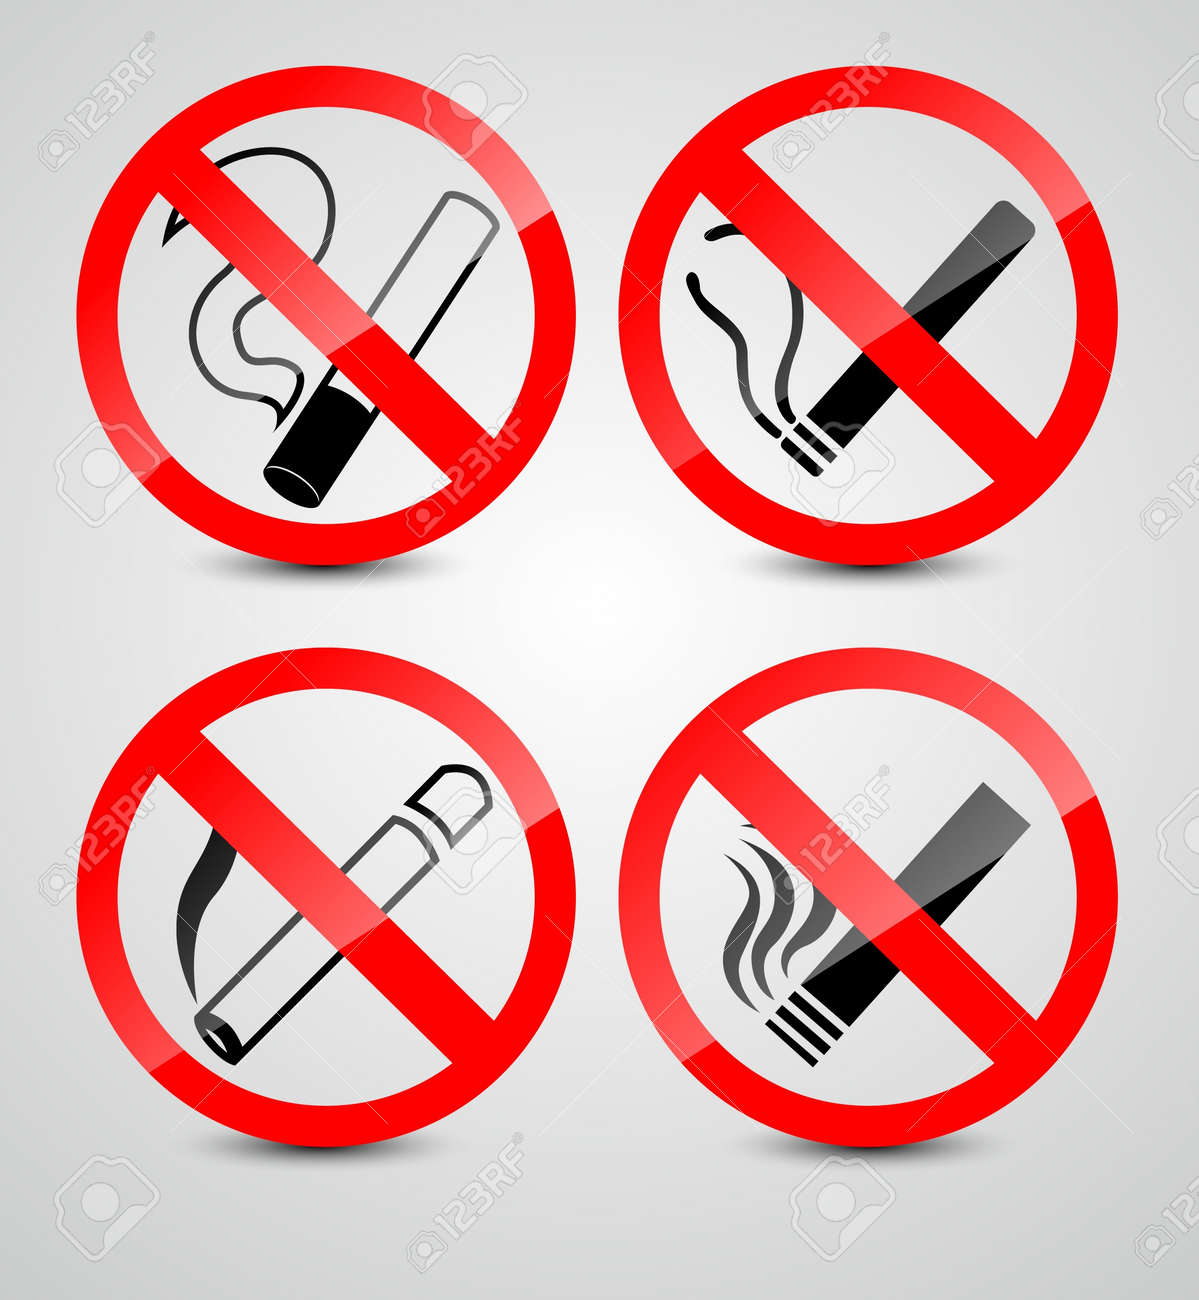 No smoking symbols royalty free cliparts vectors and stock no smoking symbols stock vector 20259221 buycottarizona Images